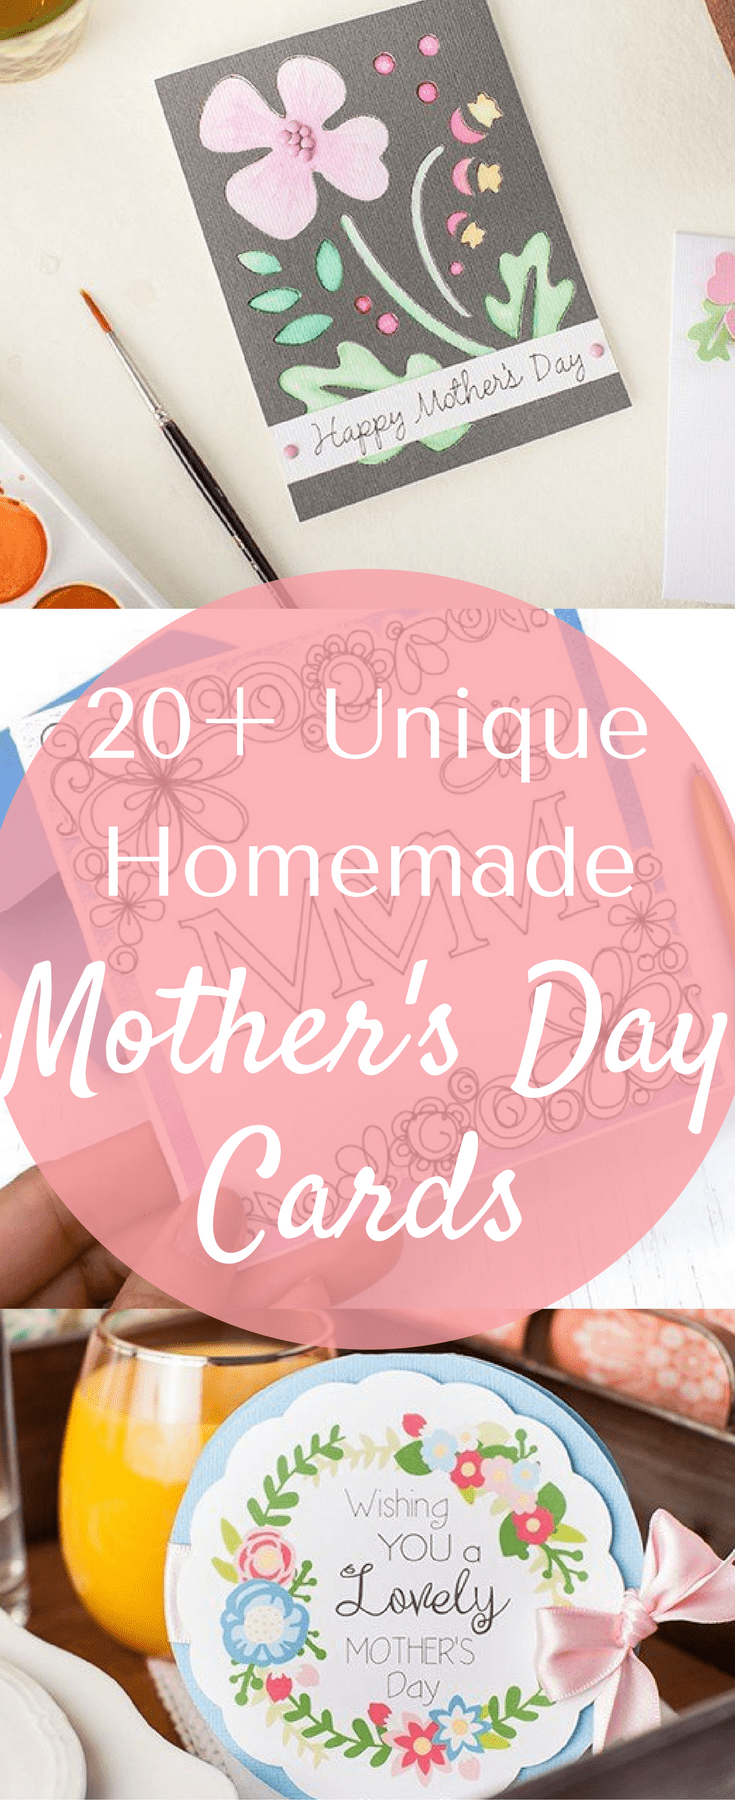 Homemade Mother's Day Cards / MOther's Day Ideas / DIY Mother's Day Cards / Cricut Mother's Day Cards / Cricut Paper Projects / Cricut Project Ideas / Paper Crafts / Paper Crafts / Homemade cards